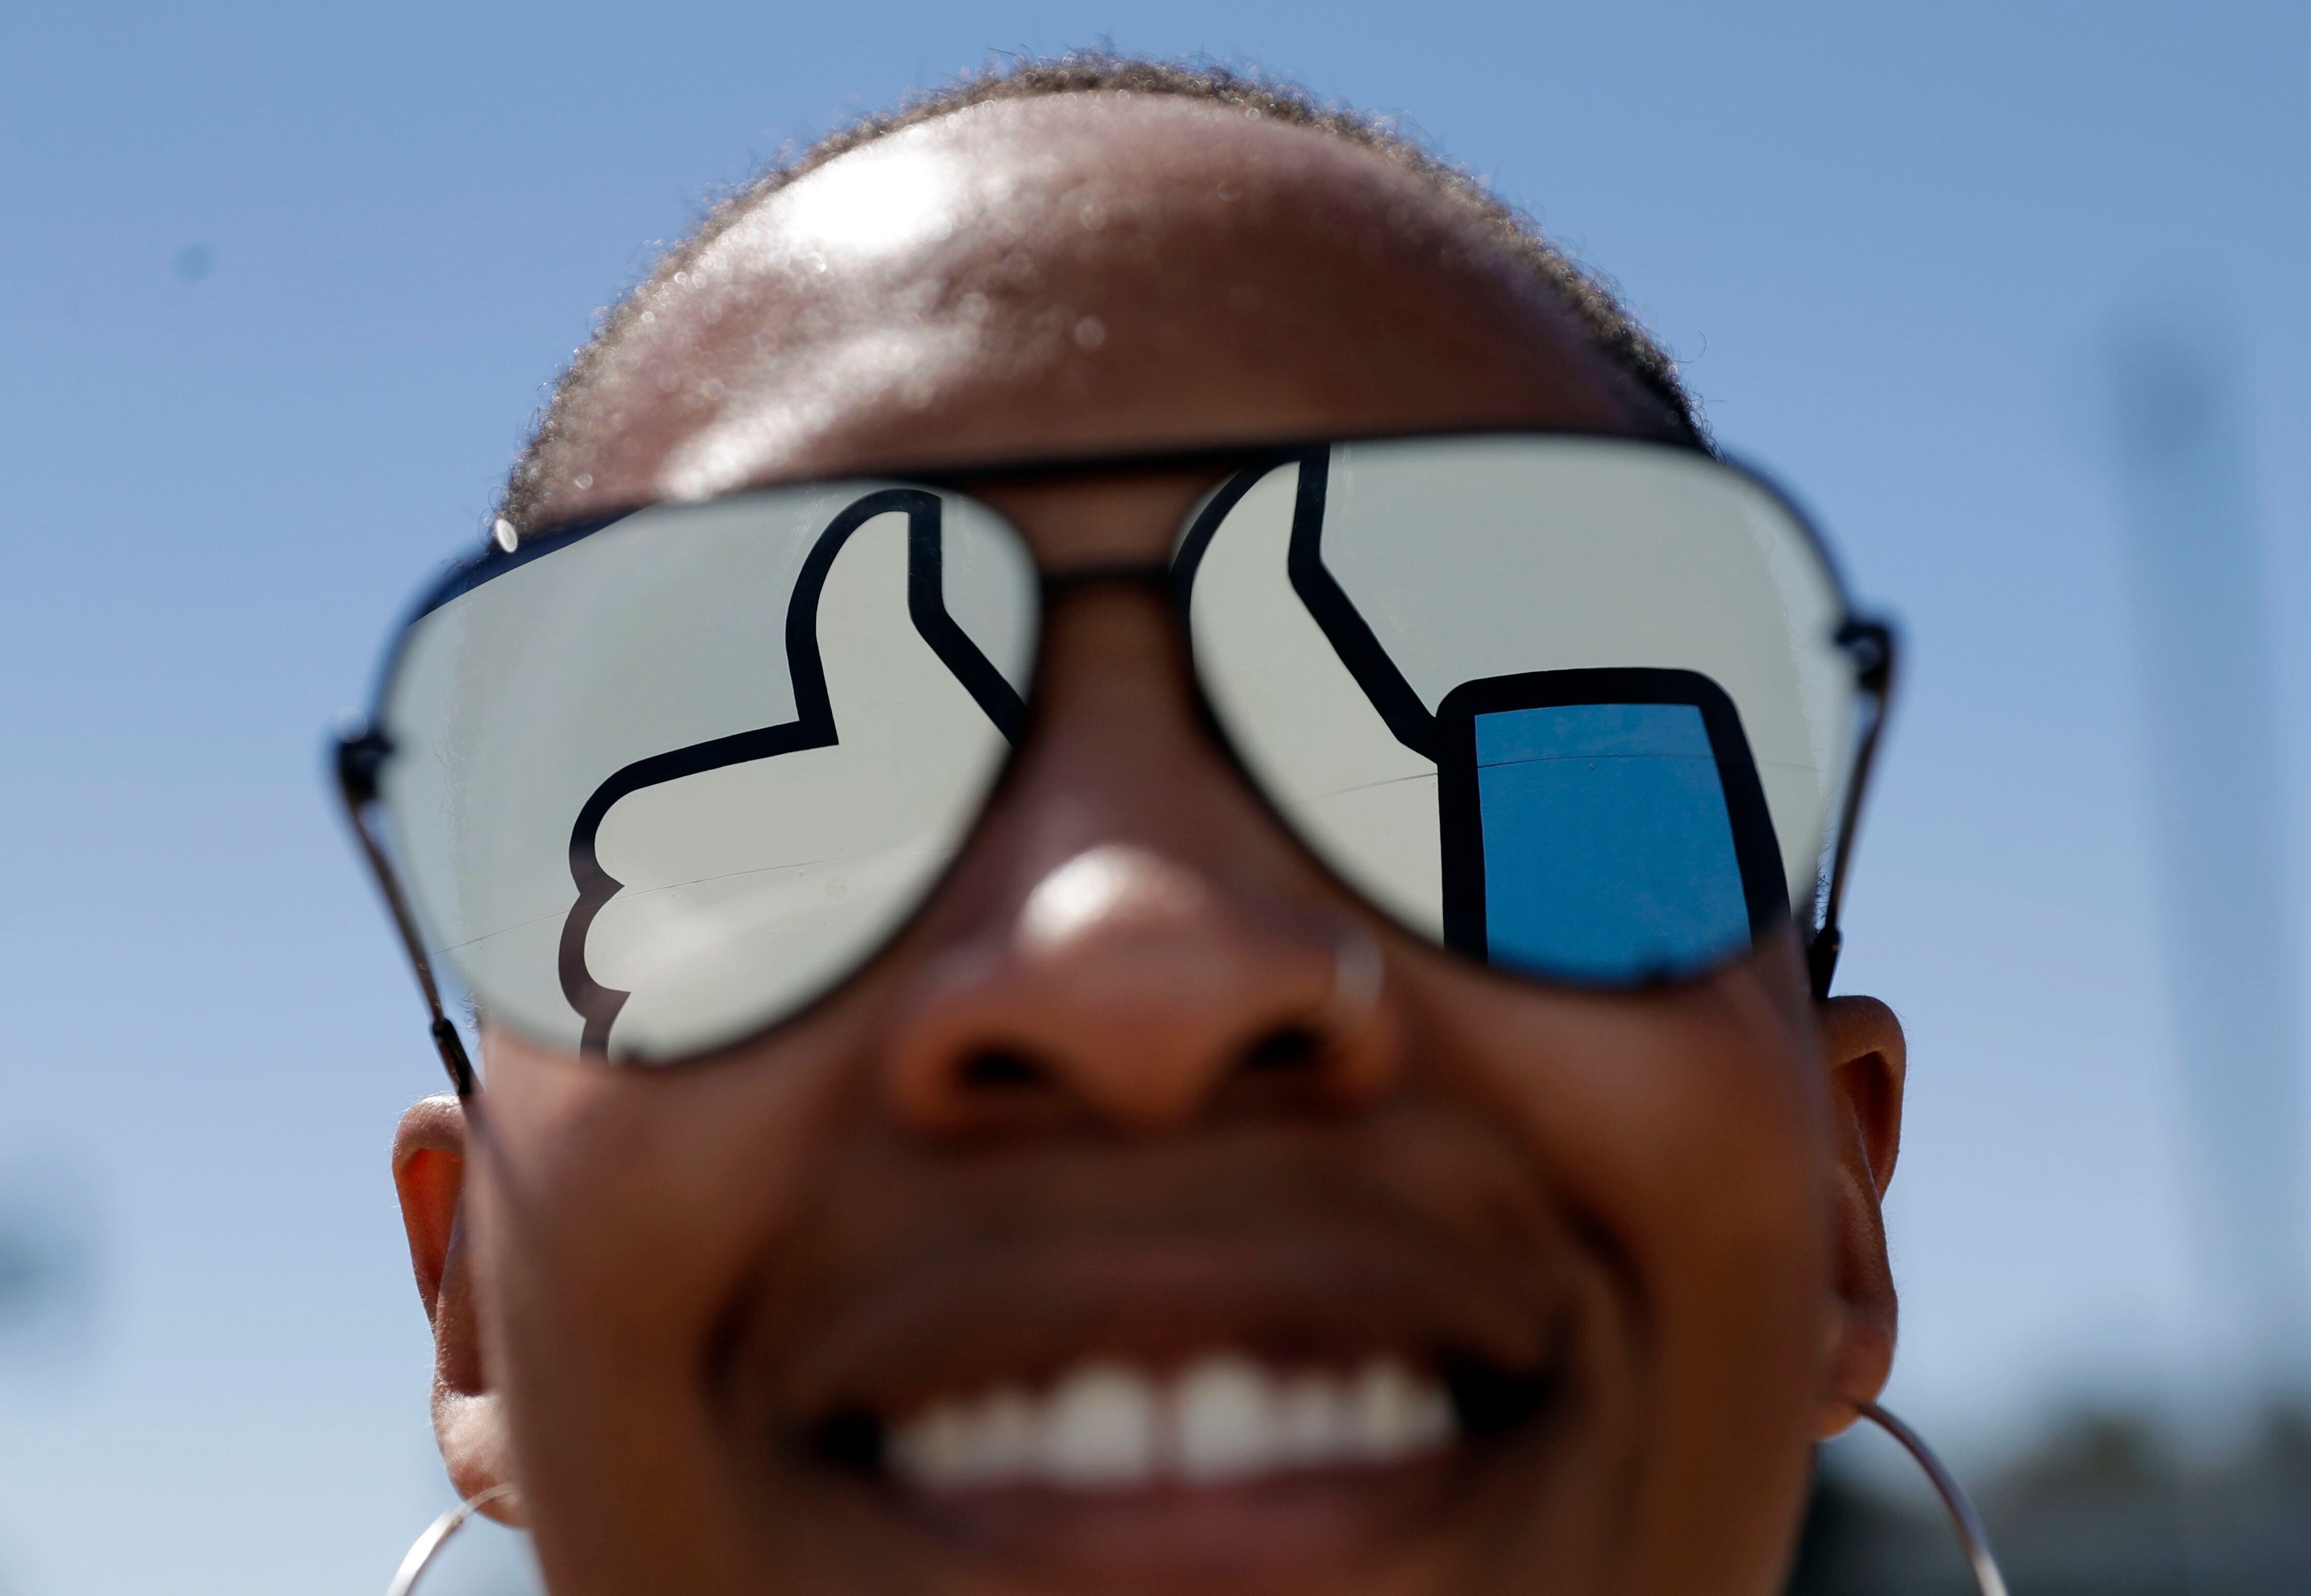 In this March 28, 2018, file photo, a visitor poses for a photo with the Facebook logo reflected on her sunglasses at the company's headquarters in Menlo Park, Calif. Facebook revealed Wednesday, April 4, that tens of millions more people might have been exposed in the Cambridge Analytica privacy scandal than previously thought and said it will restrict the user data that outsiders can access. (AP Photo/Marcio Jose Sanchez)